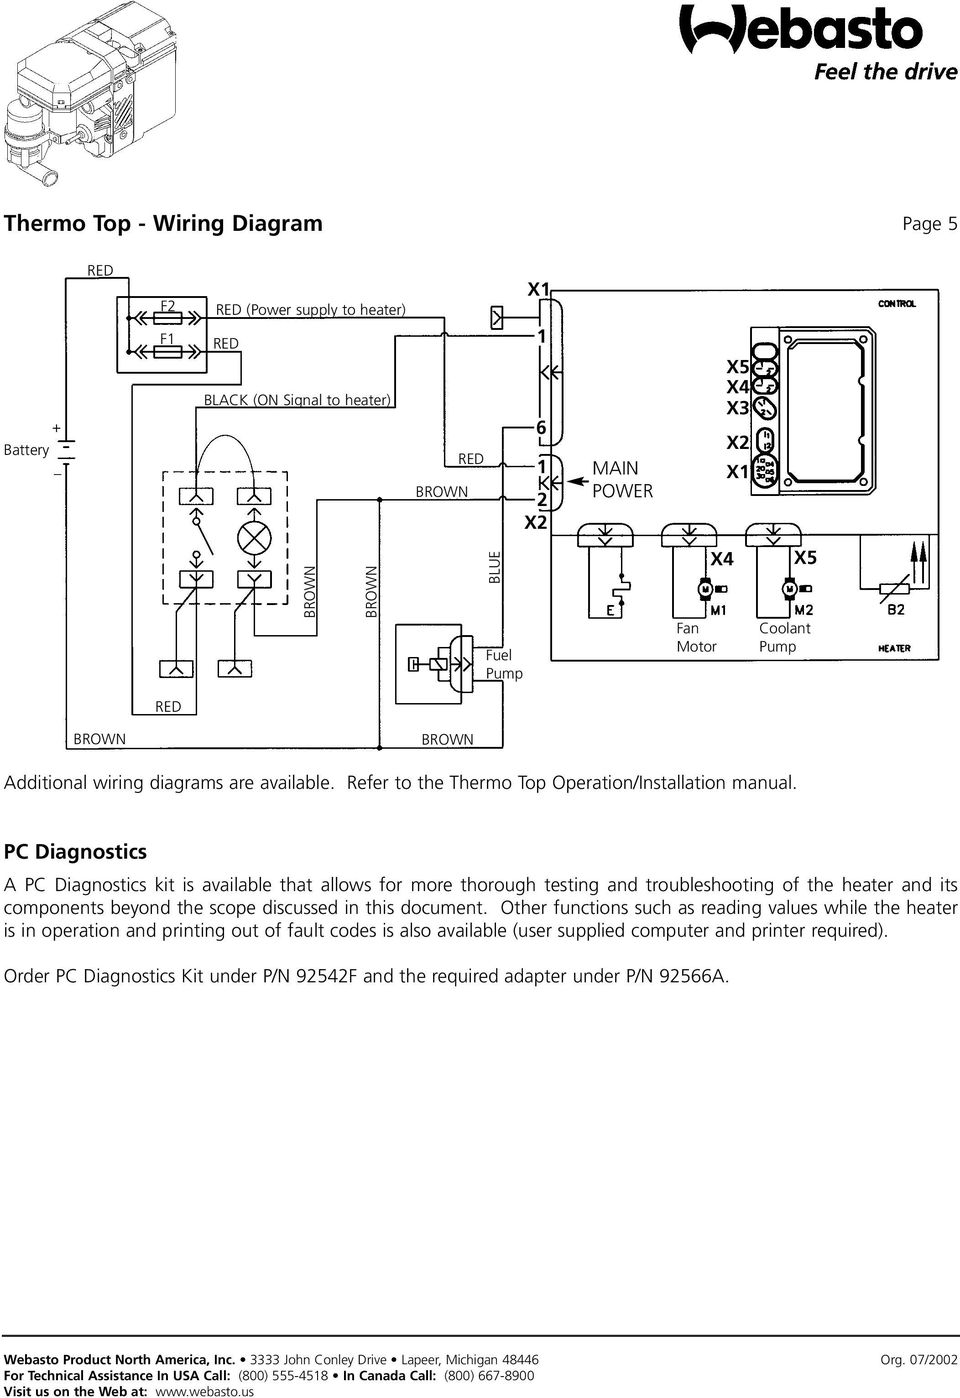 Thermo Top - Troubleshooting Tree - PDF on